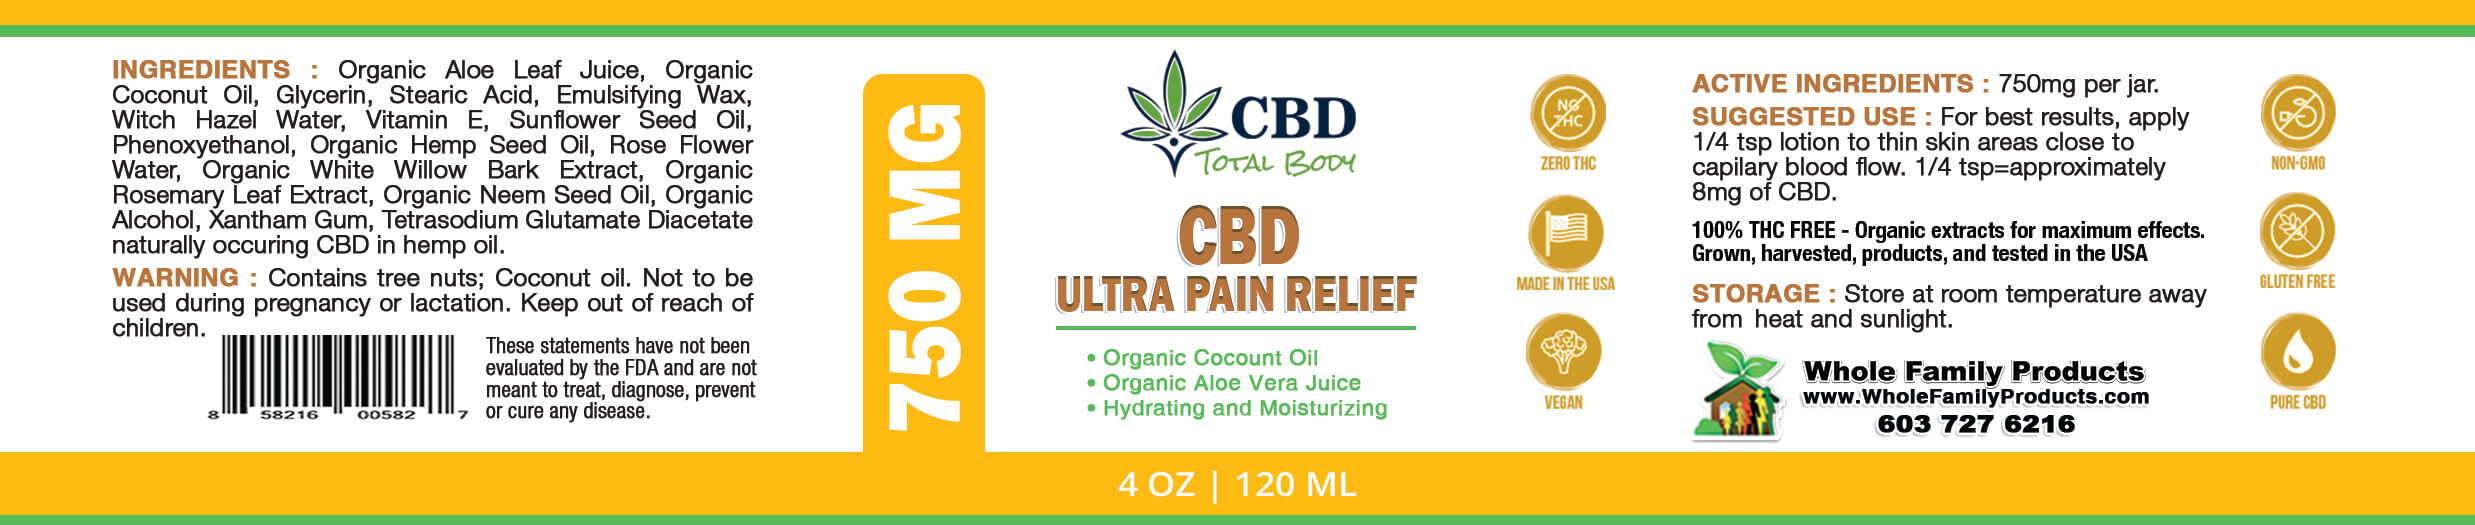 CBD Ultra Pain Relief Cream Label